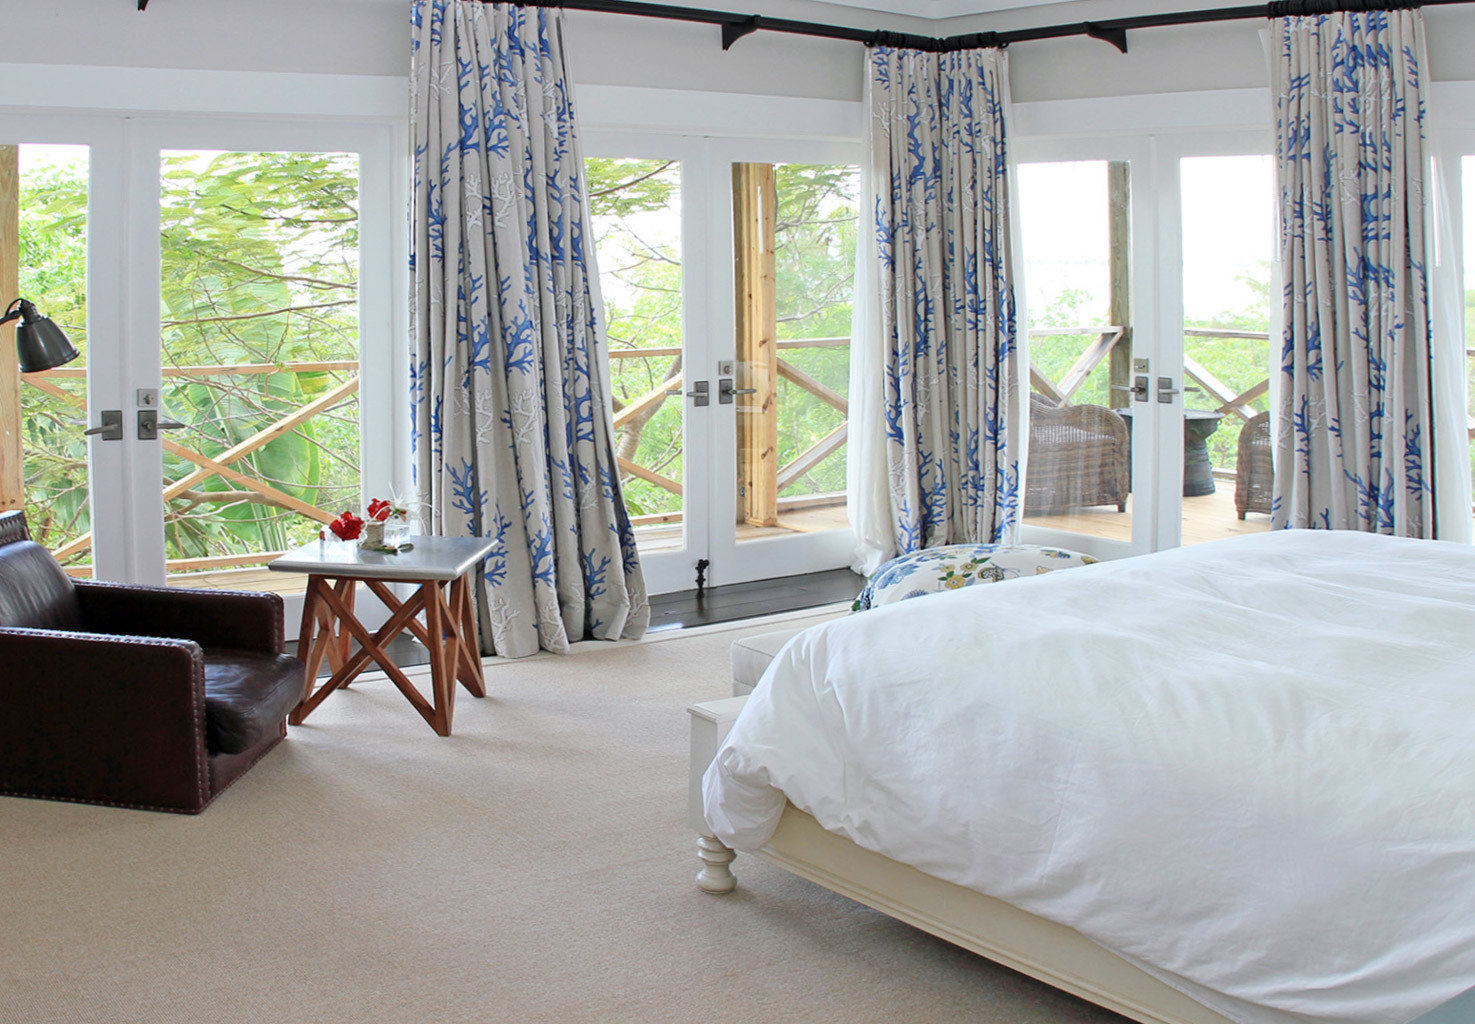 Beachfront Bedroom Eco Hotels Living Luxury Resort Romance indoor window room floor property bed chair interior design home cottage estate real estate curtain textile furniture apartment